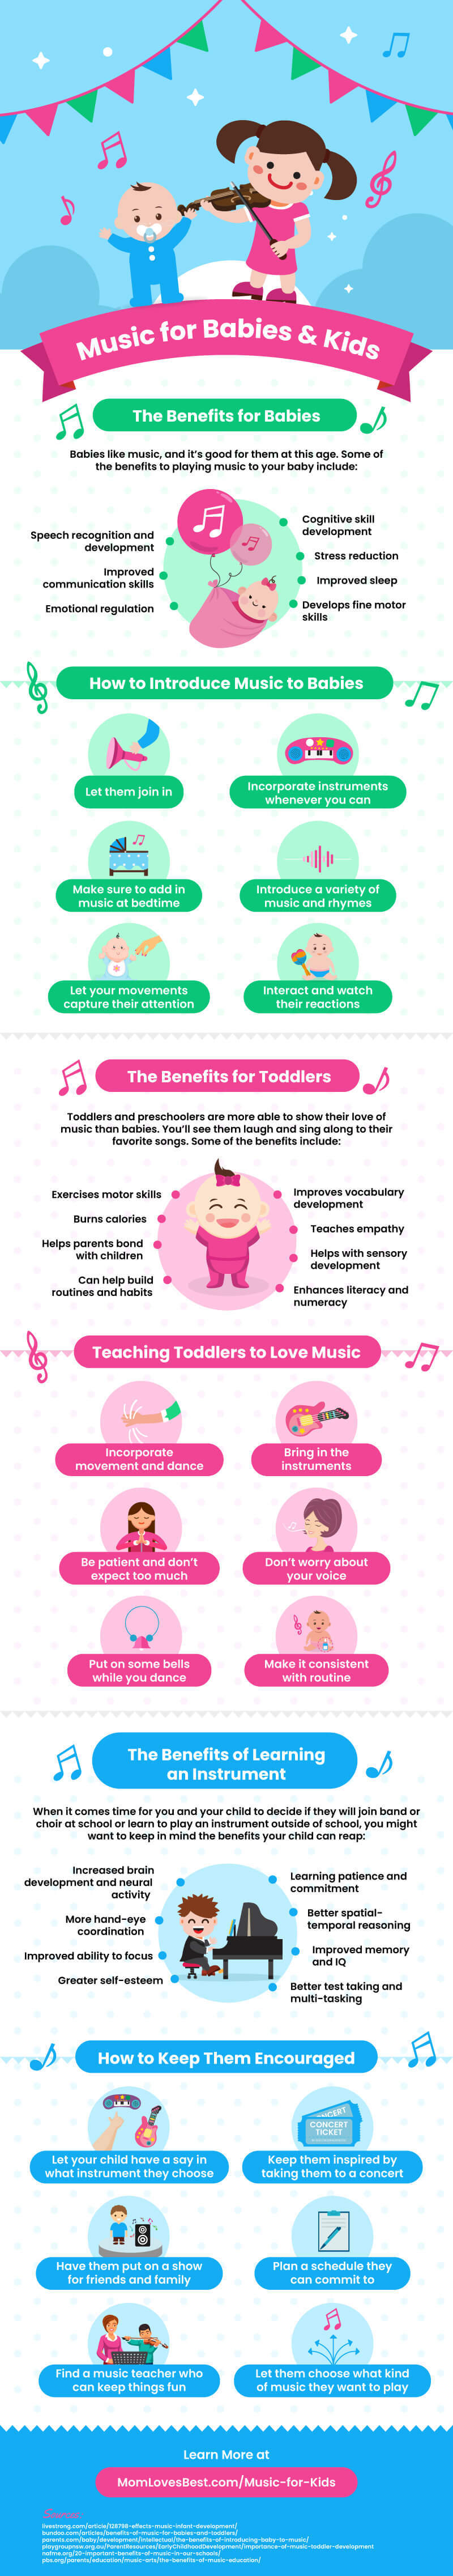 Introducing music to babies: this is how you strike the right chord